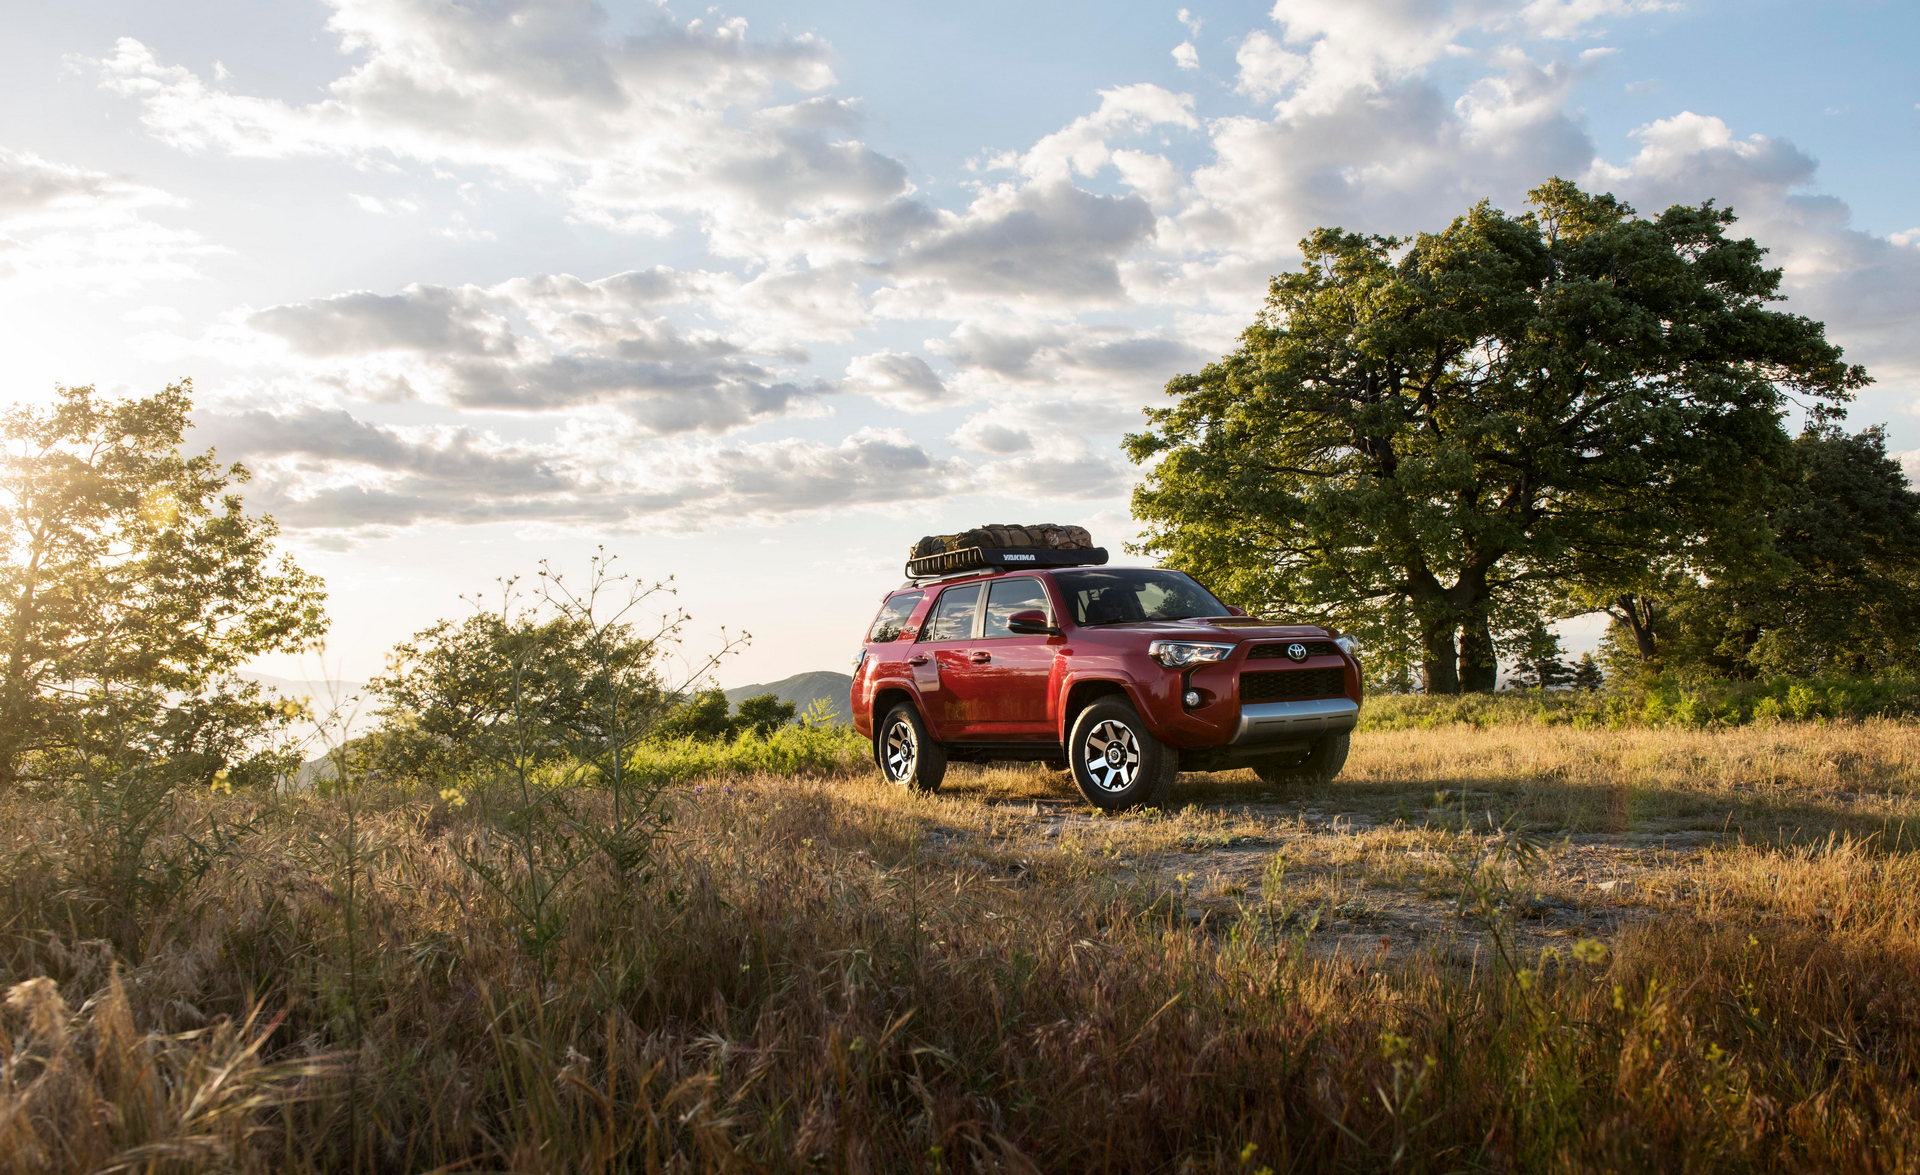 2017 Toyota 4Runner TRD Off-Road Premium © Toyota Motor Corporation